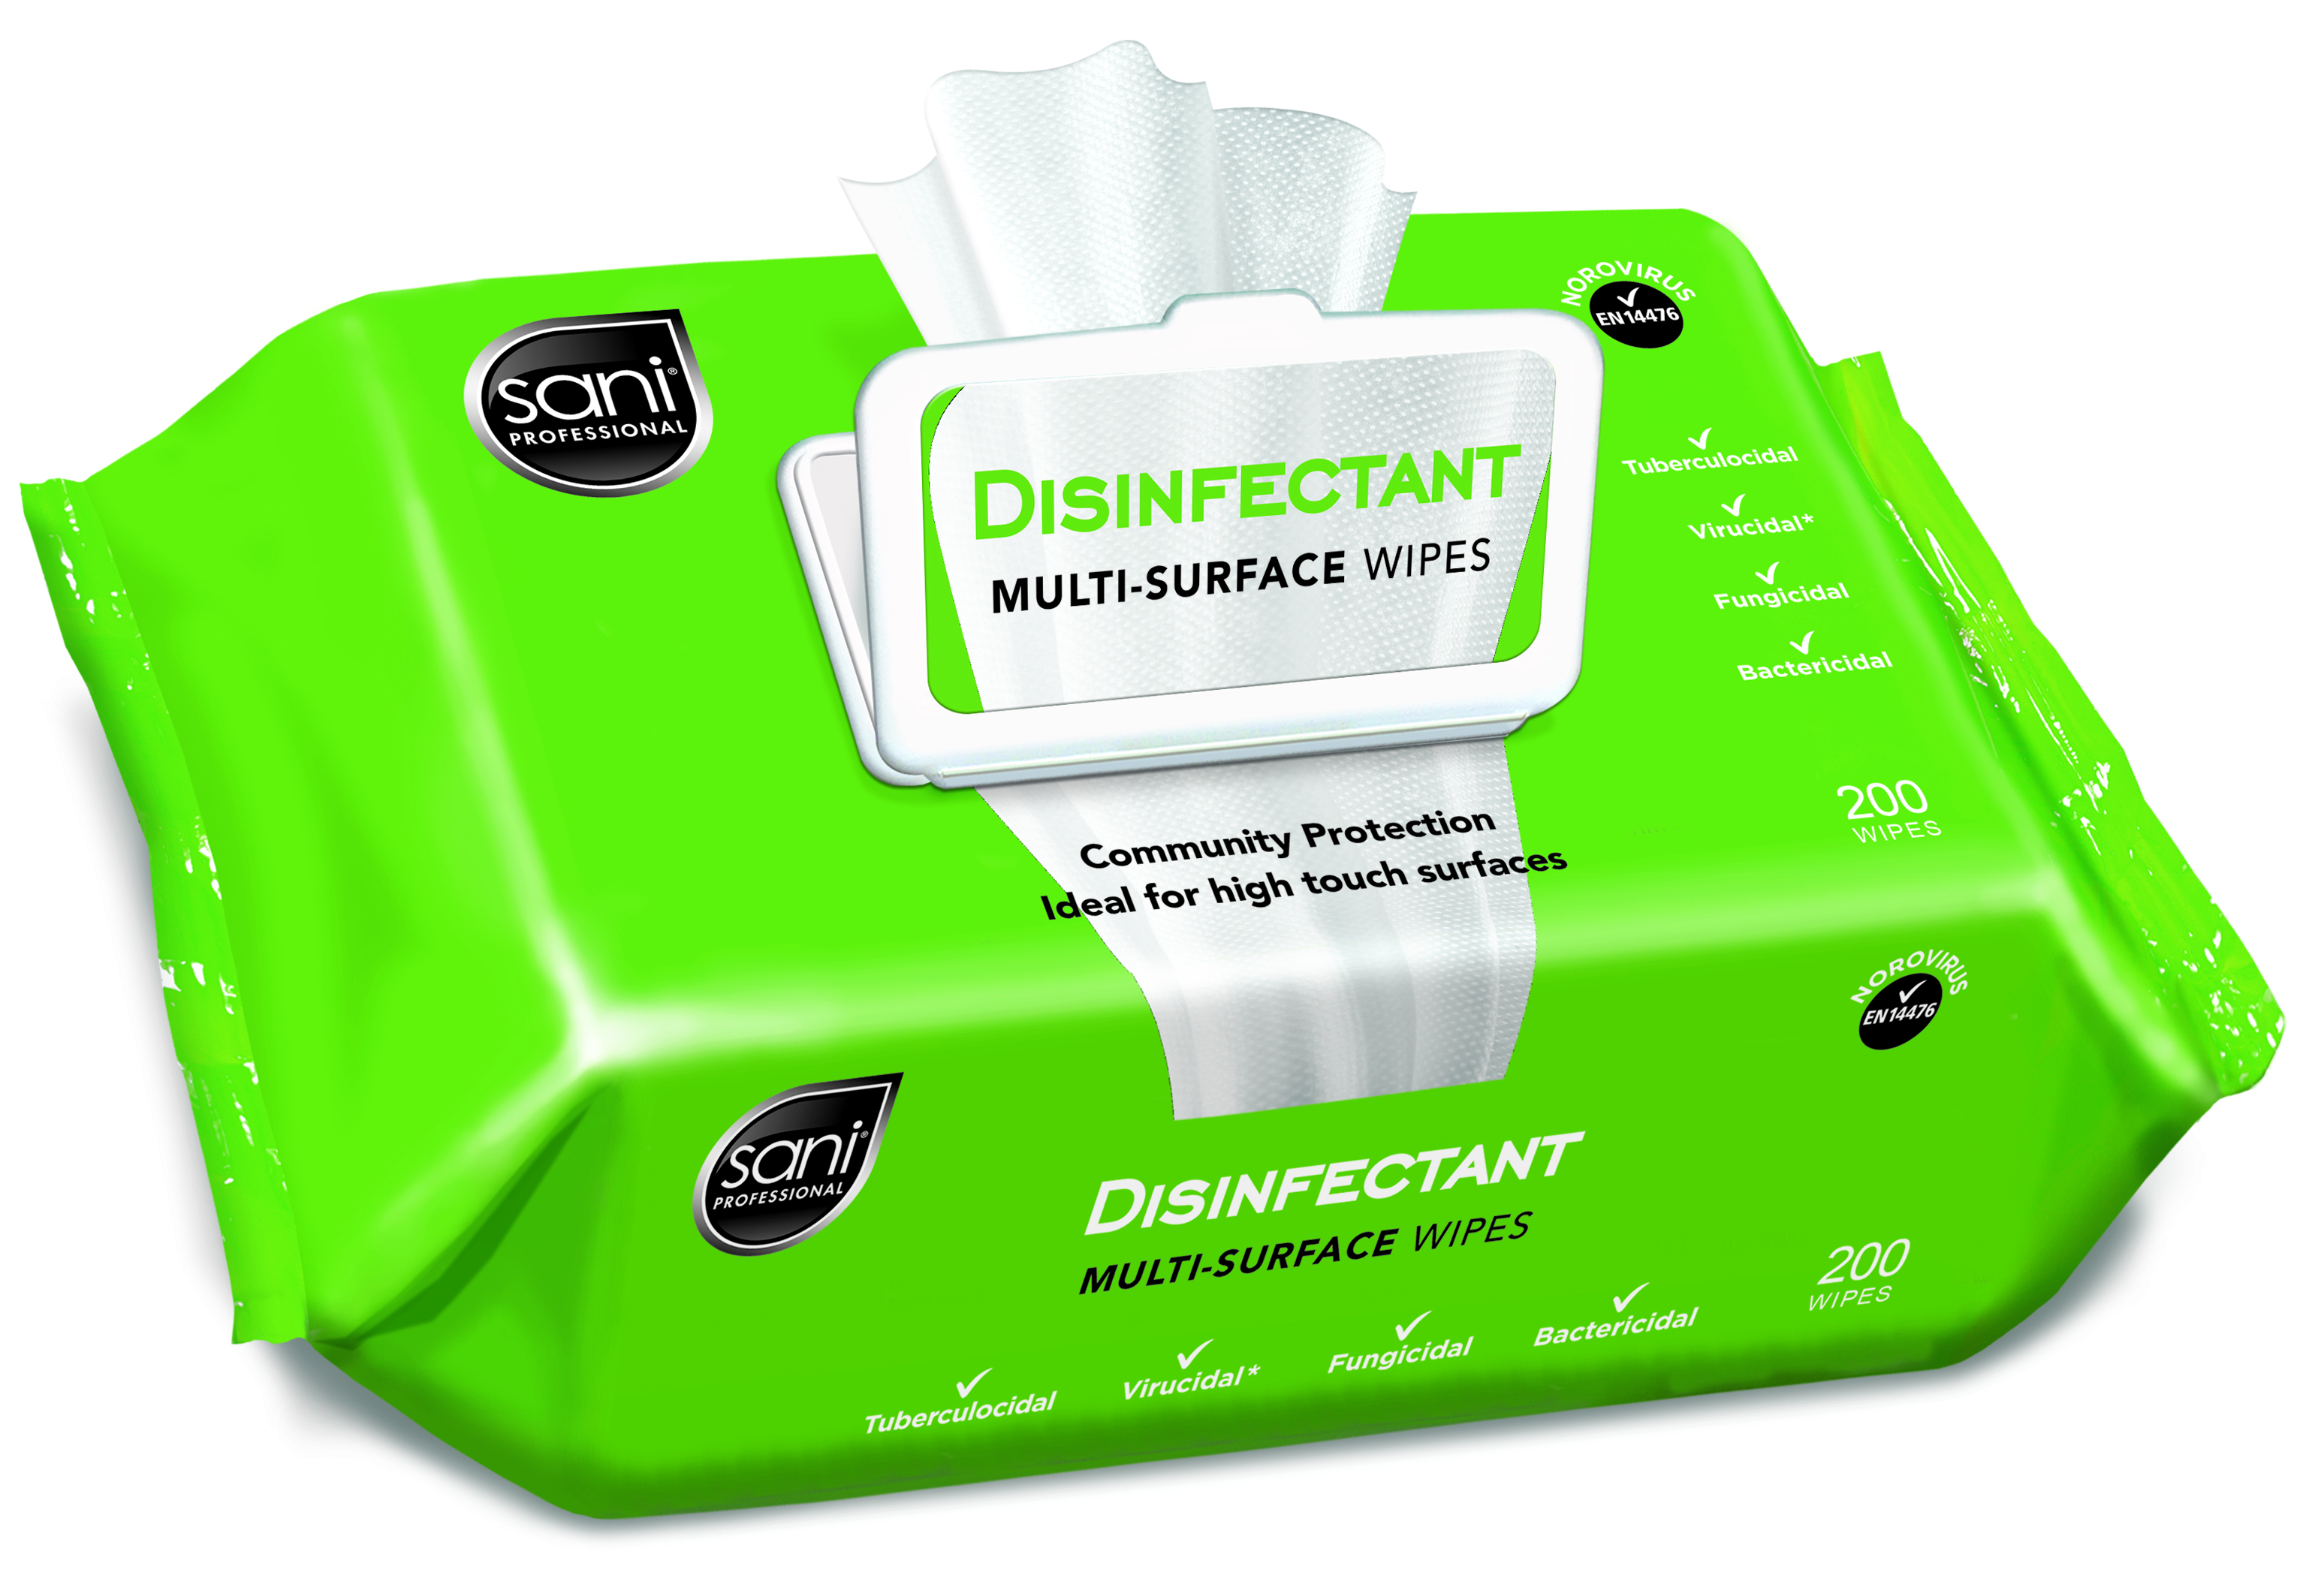 637292044642814954_klaec6890---multi-surface-disinfectant-wipes-pack-200.jpg